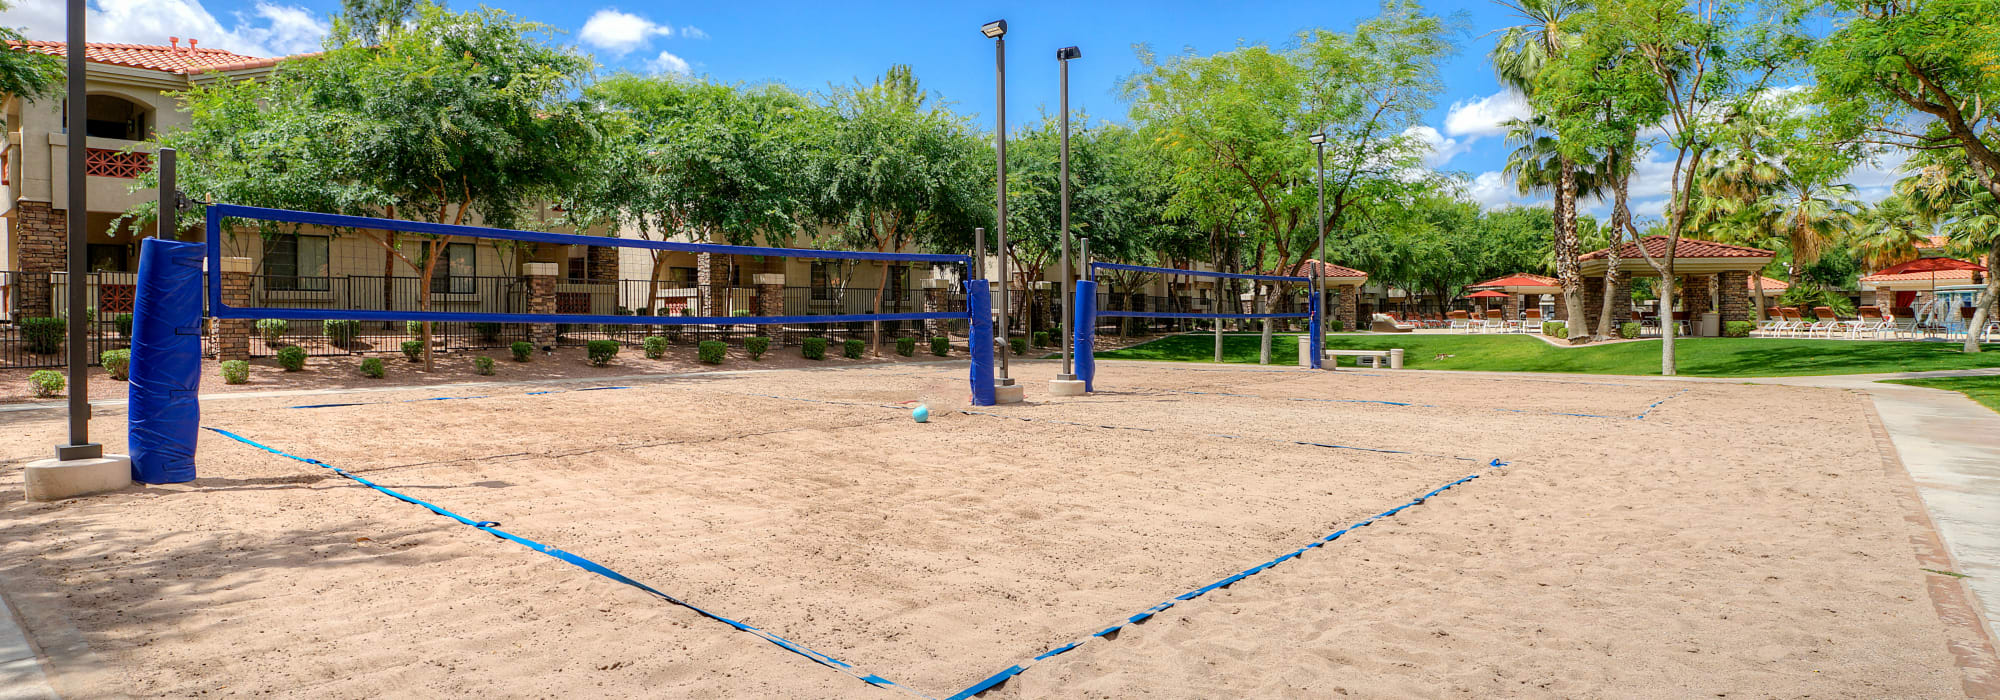 Large, sandy volleyball court at San Palacio in Chandler, Arizona